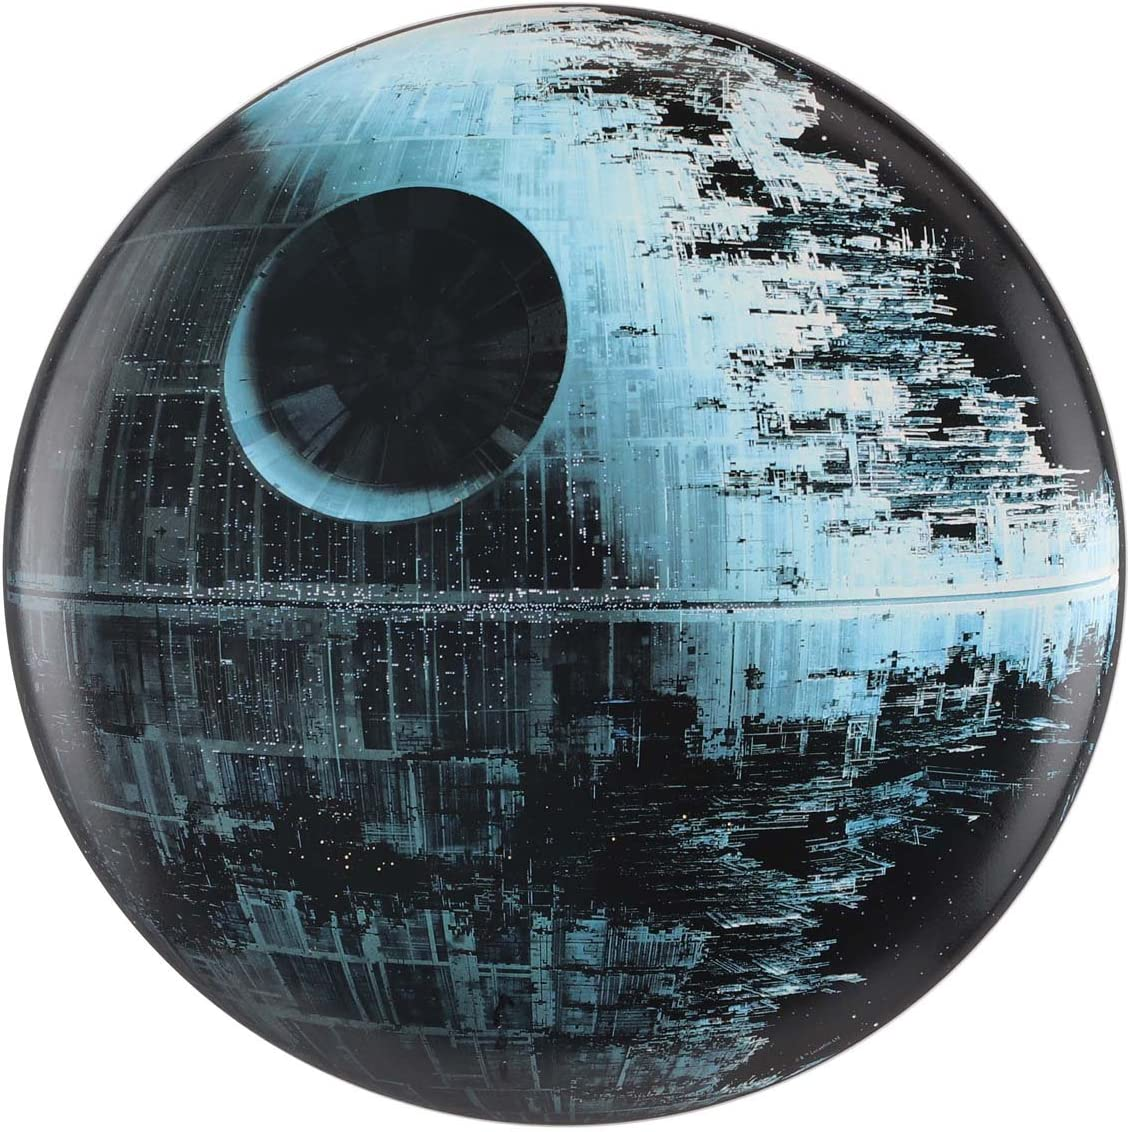 Open Road Brands Star Wars Death Star Metal Button - an Officially Licensed Product Great Addition to Add What You Love to Your Home/Garage Decor